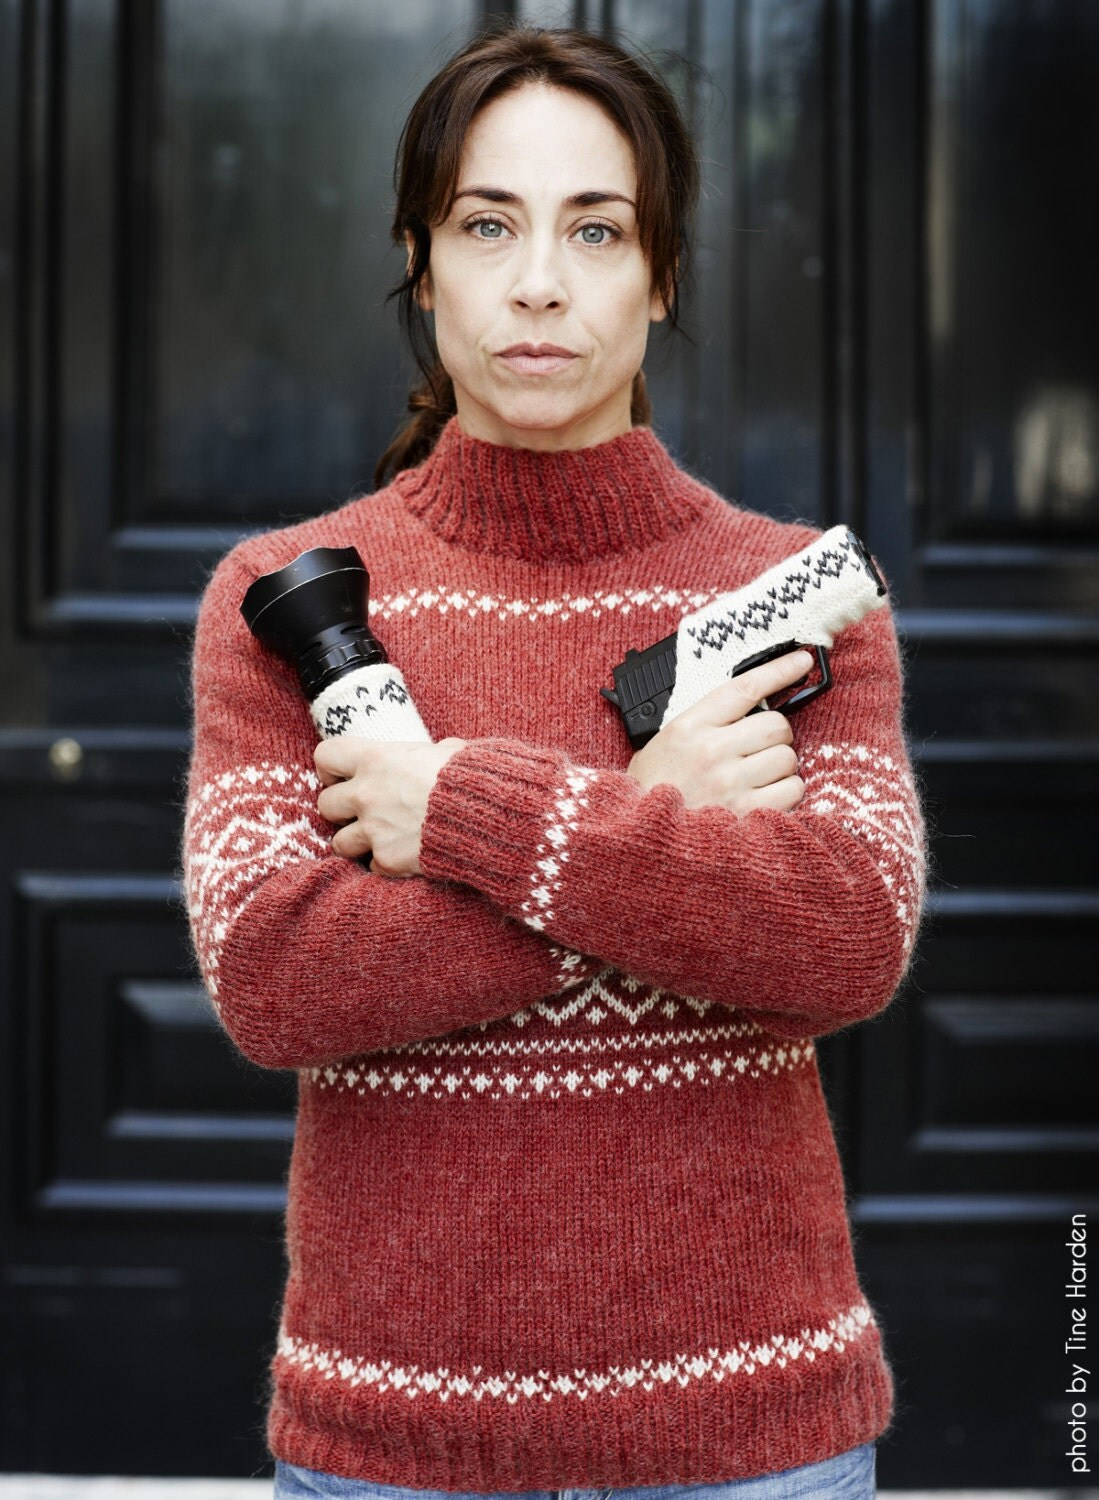 Strawberries & Crime - a knitting pattern inspired by The Killing (Forbry...